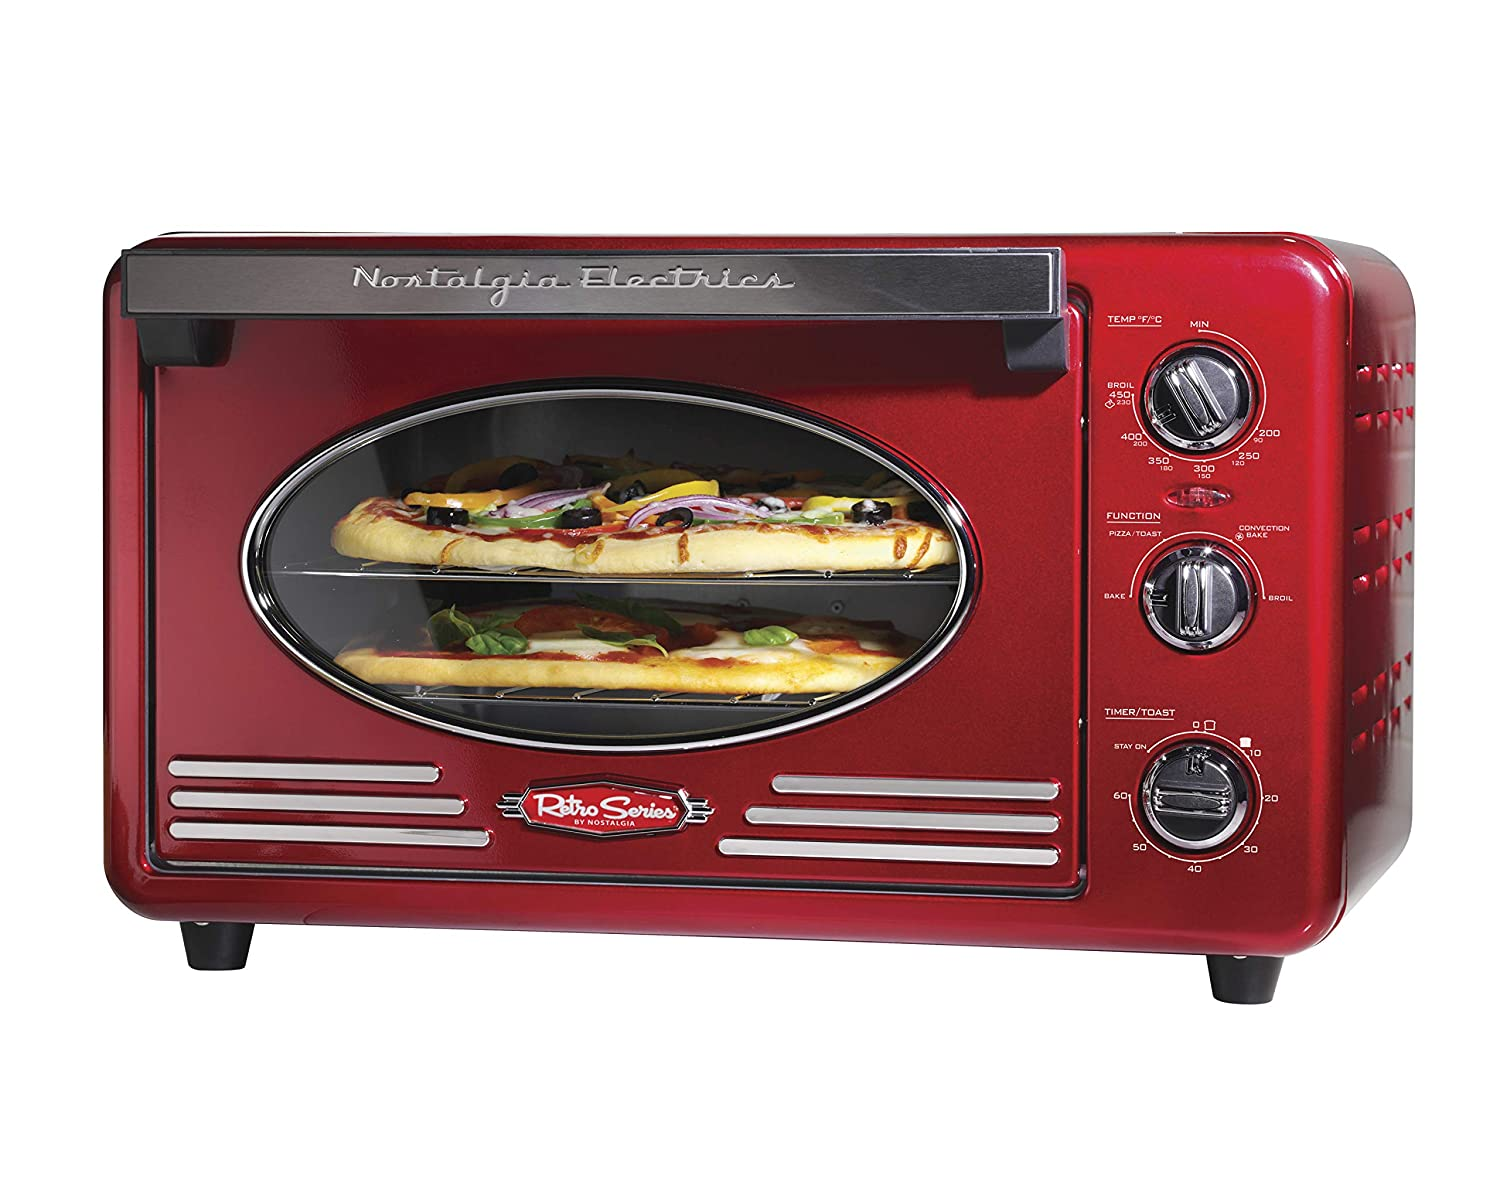 Nostalgia RTOV2RR Large-Capacity 0.7-Cu. Ft. Capacity Multi-Functioning Retro Convection Toaster Oven, Fits 12 Slices of Bread and Two 12-Inch Pizzas, Built In Timer, Includes Baking Pan